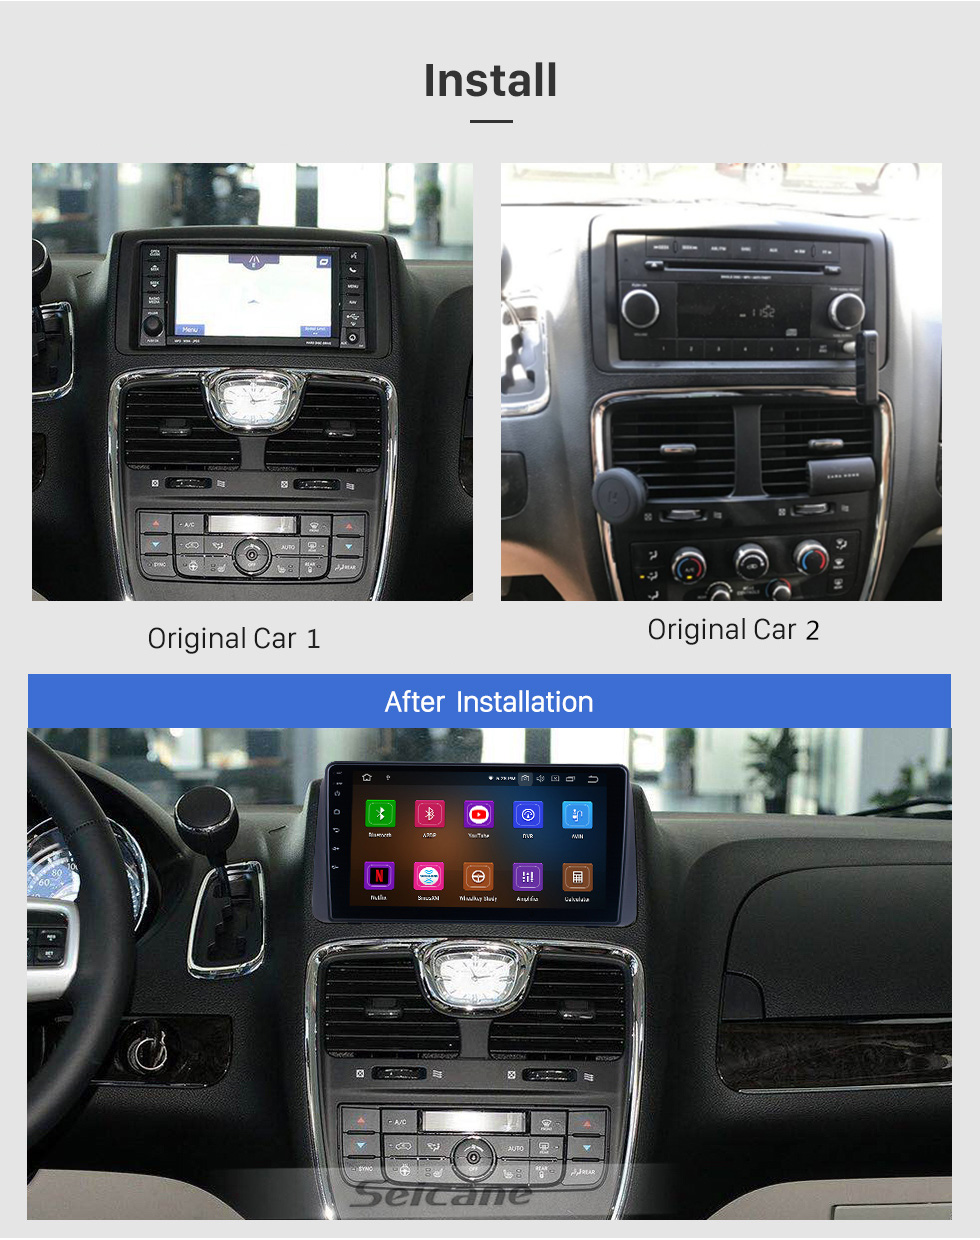 Seicane For 2011 Chrysler Grand Voyager Radio Android 10.0 HD Touchscreen 9 inch GPS Navigation System with Bluetooth support Carplay DVR